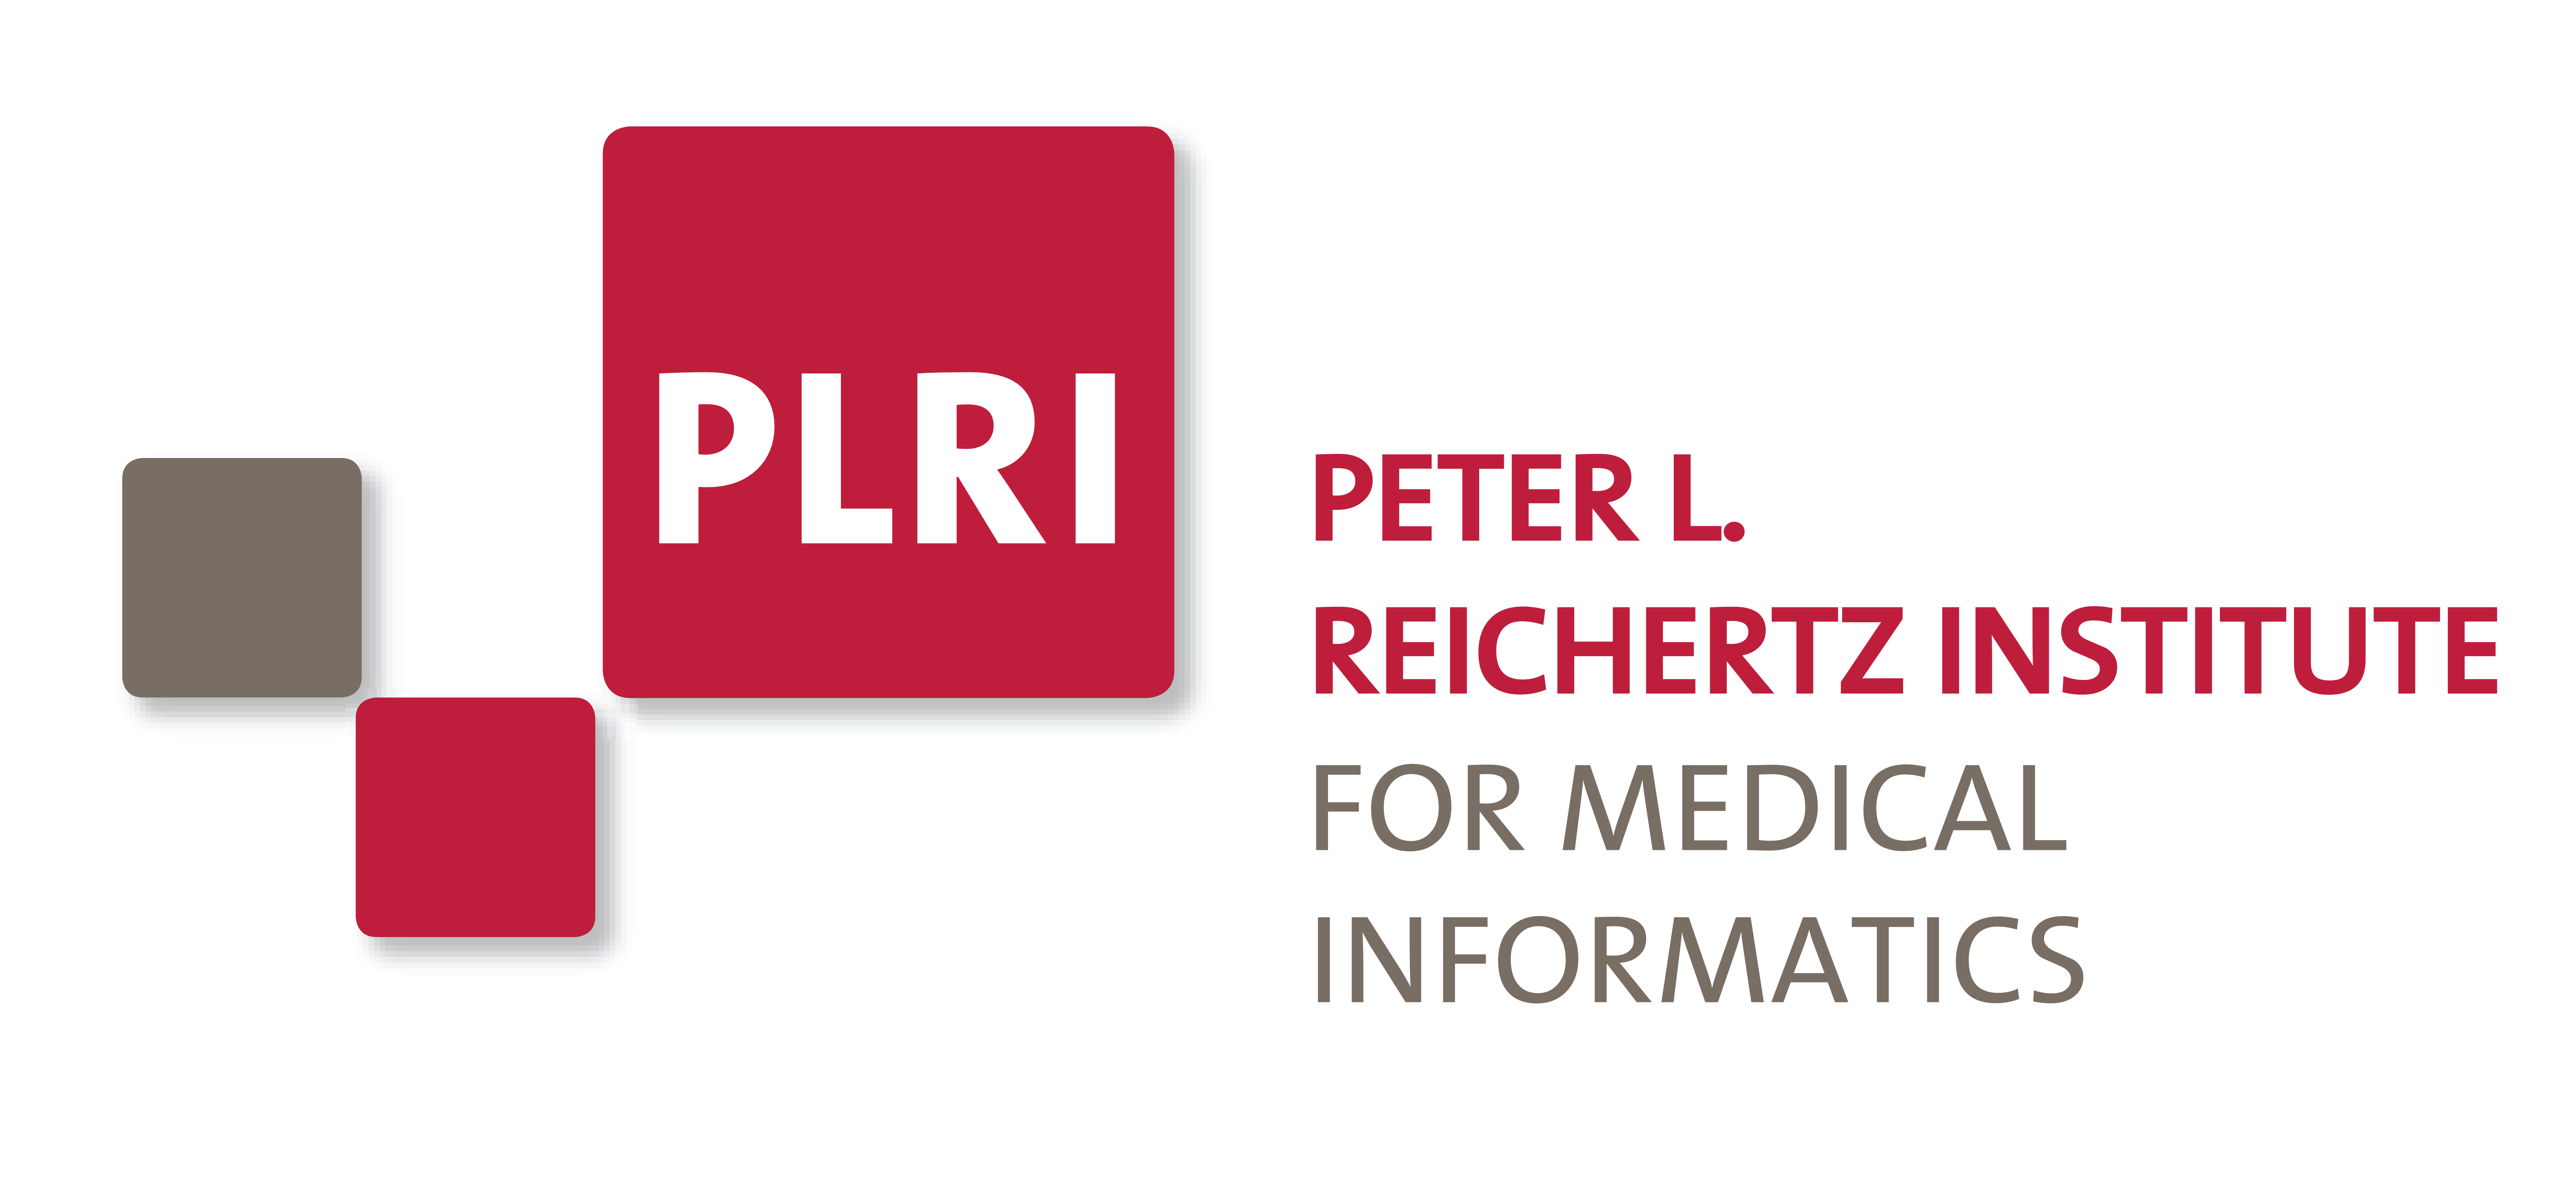 Peter L. Reichertz Institute for Medical Informatics: PLRI